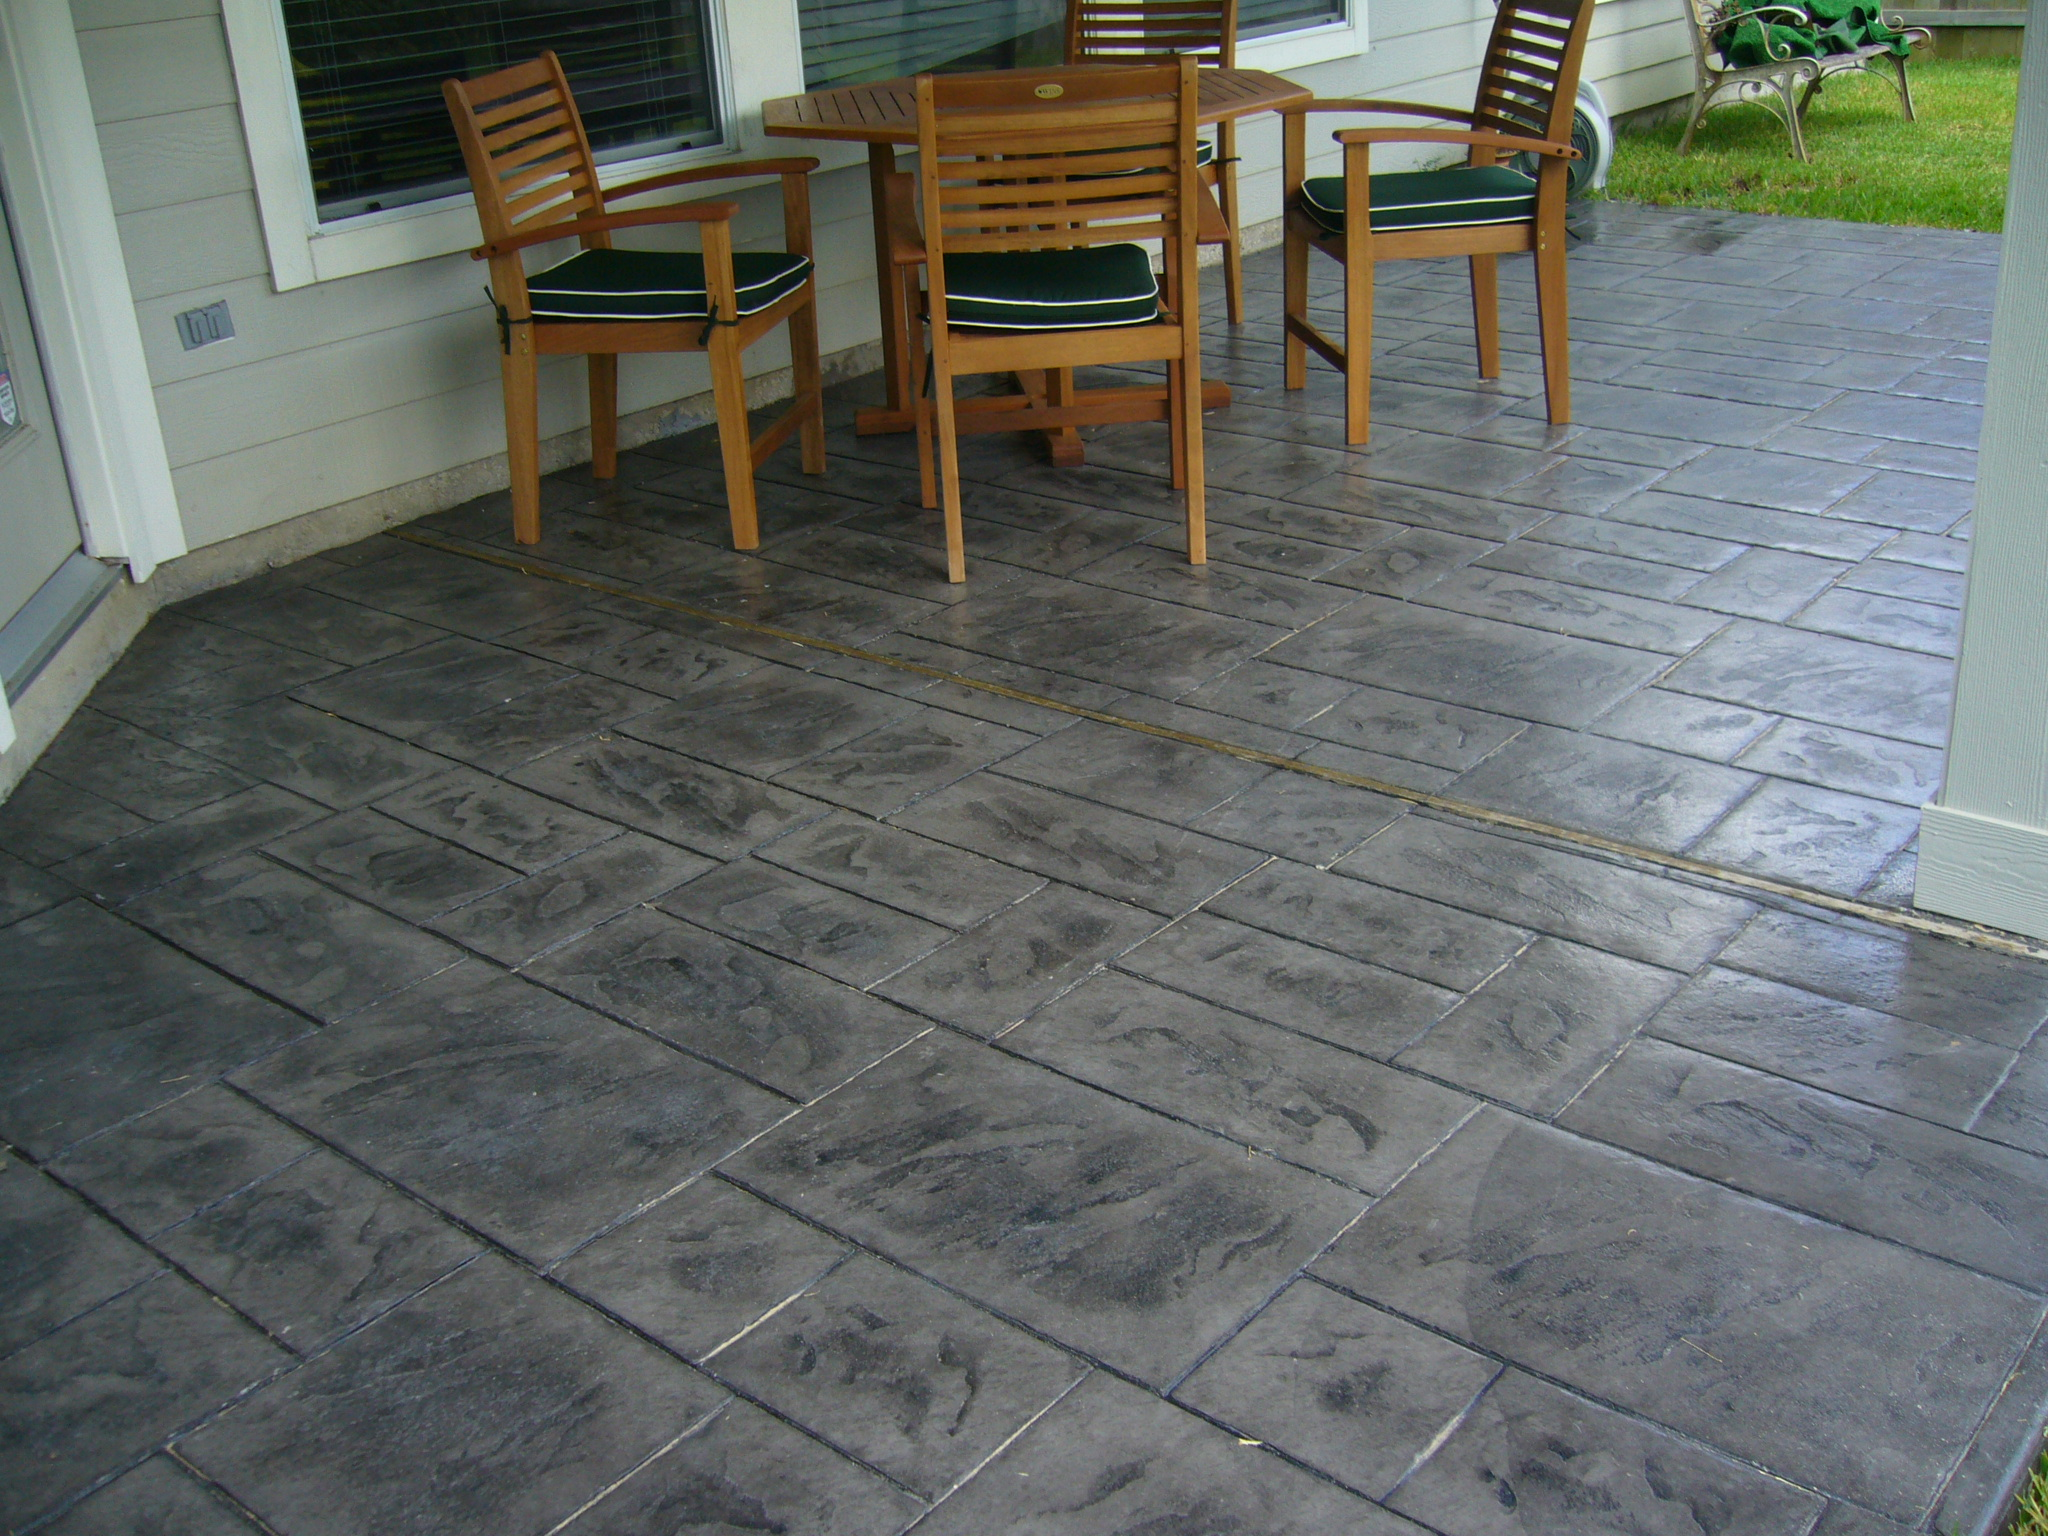 Stamped Concrete Design Ideas garage parking stamped stone stamped concrete ozark pattern concrete inc lowell Ideas Stamped Concrete Patio Design Sterling Hts Mi Concrete Patio